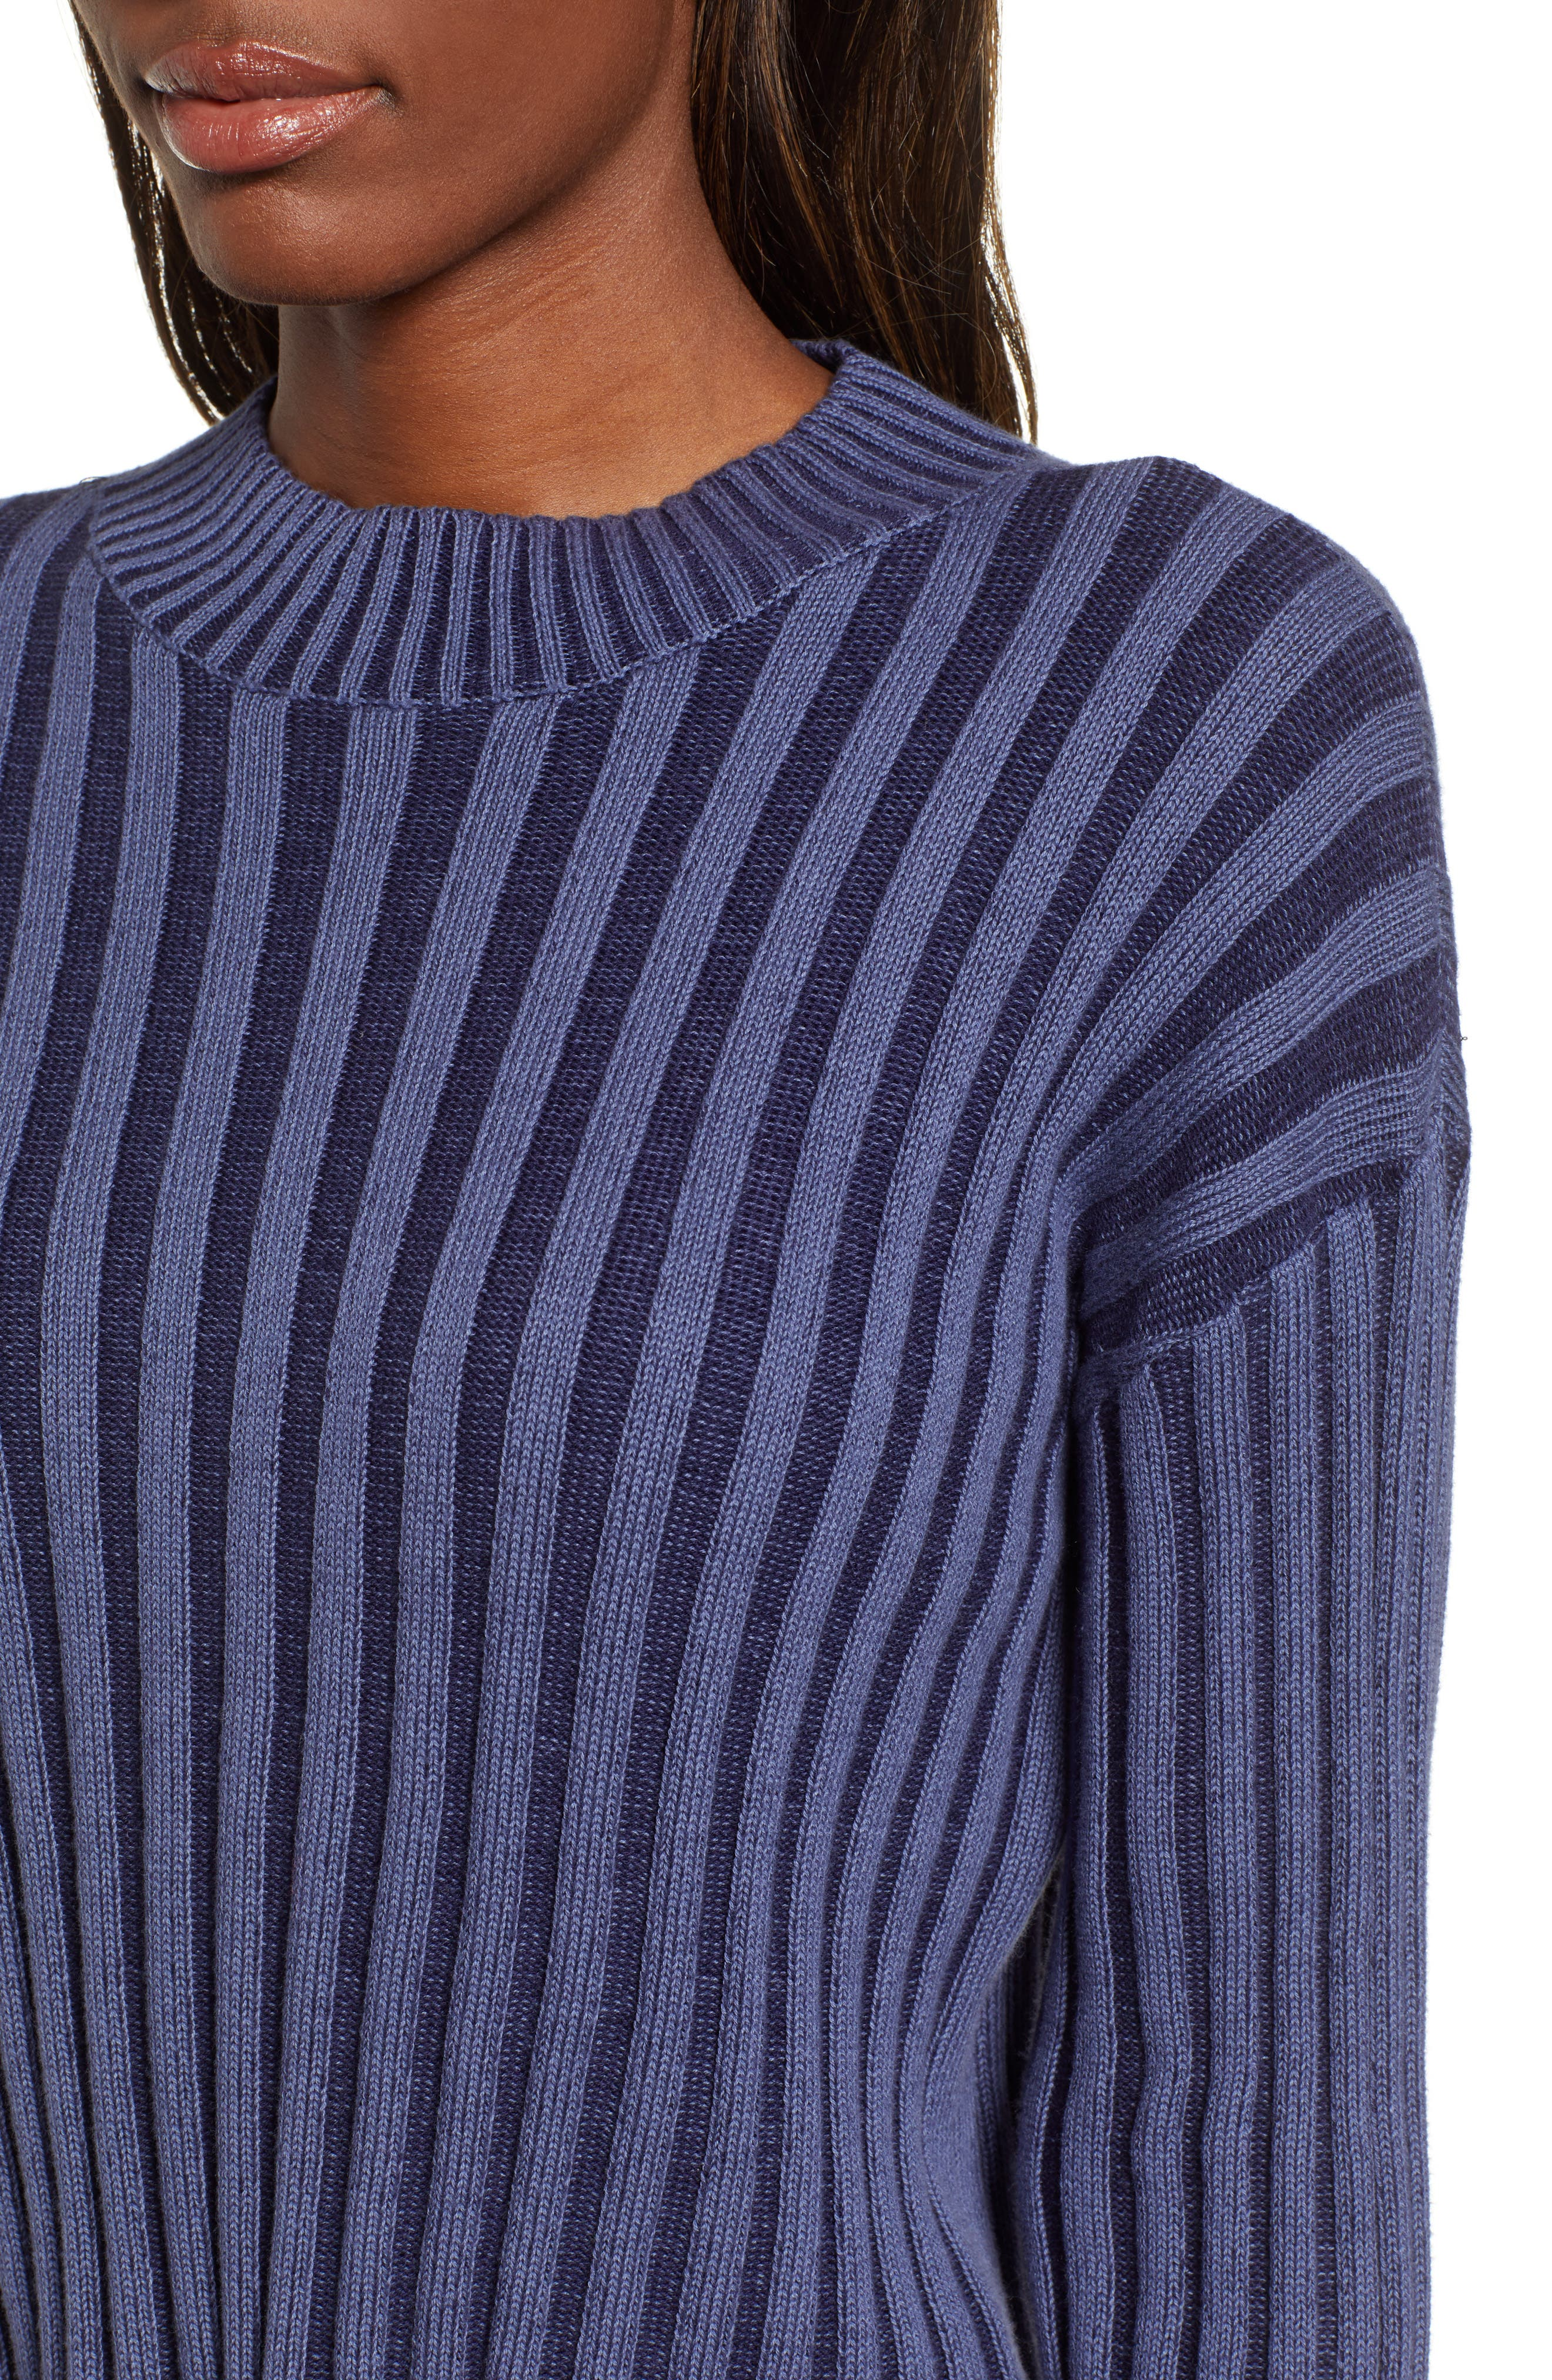 BP., Shadow Rib Crop Sweater, Alternate thumbnail 5, color, NAVY EVENING